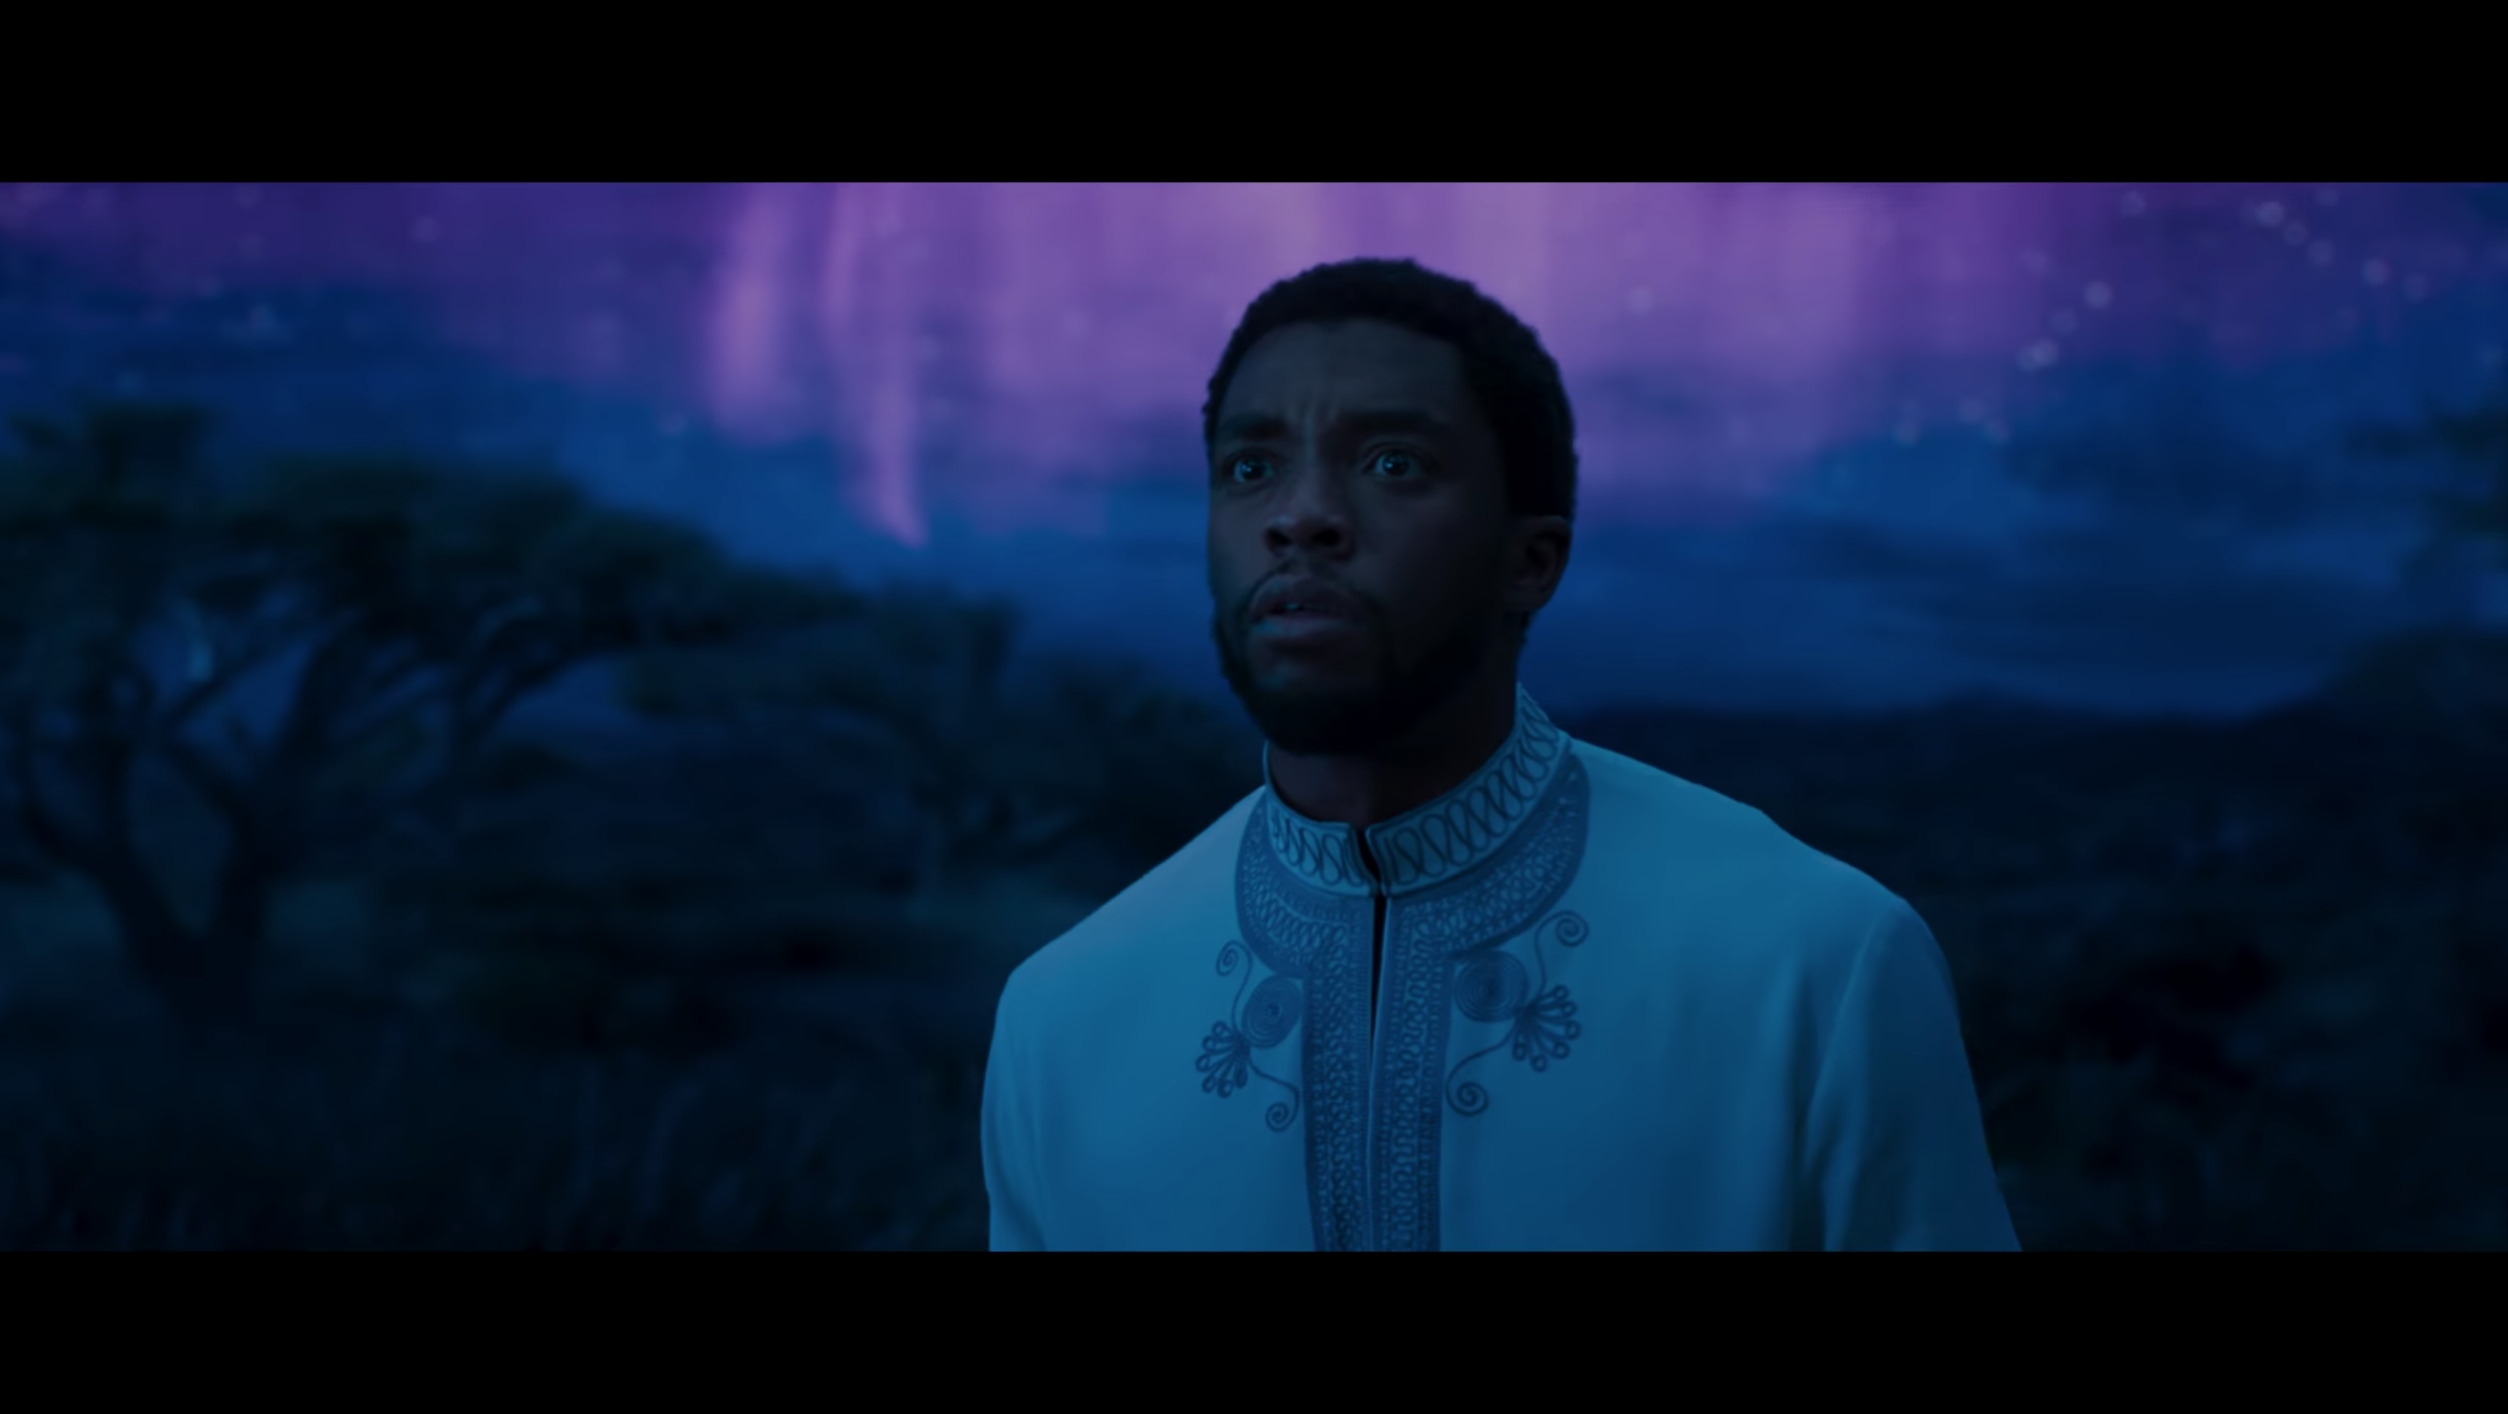 King of Wakanda in Marvel's movie Black Panther.